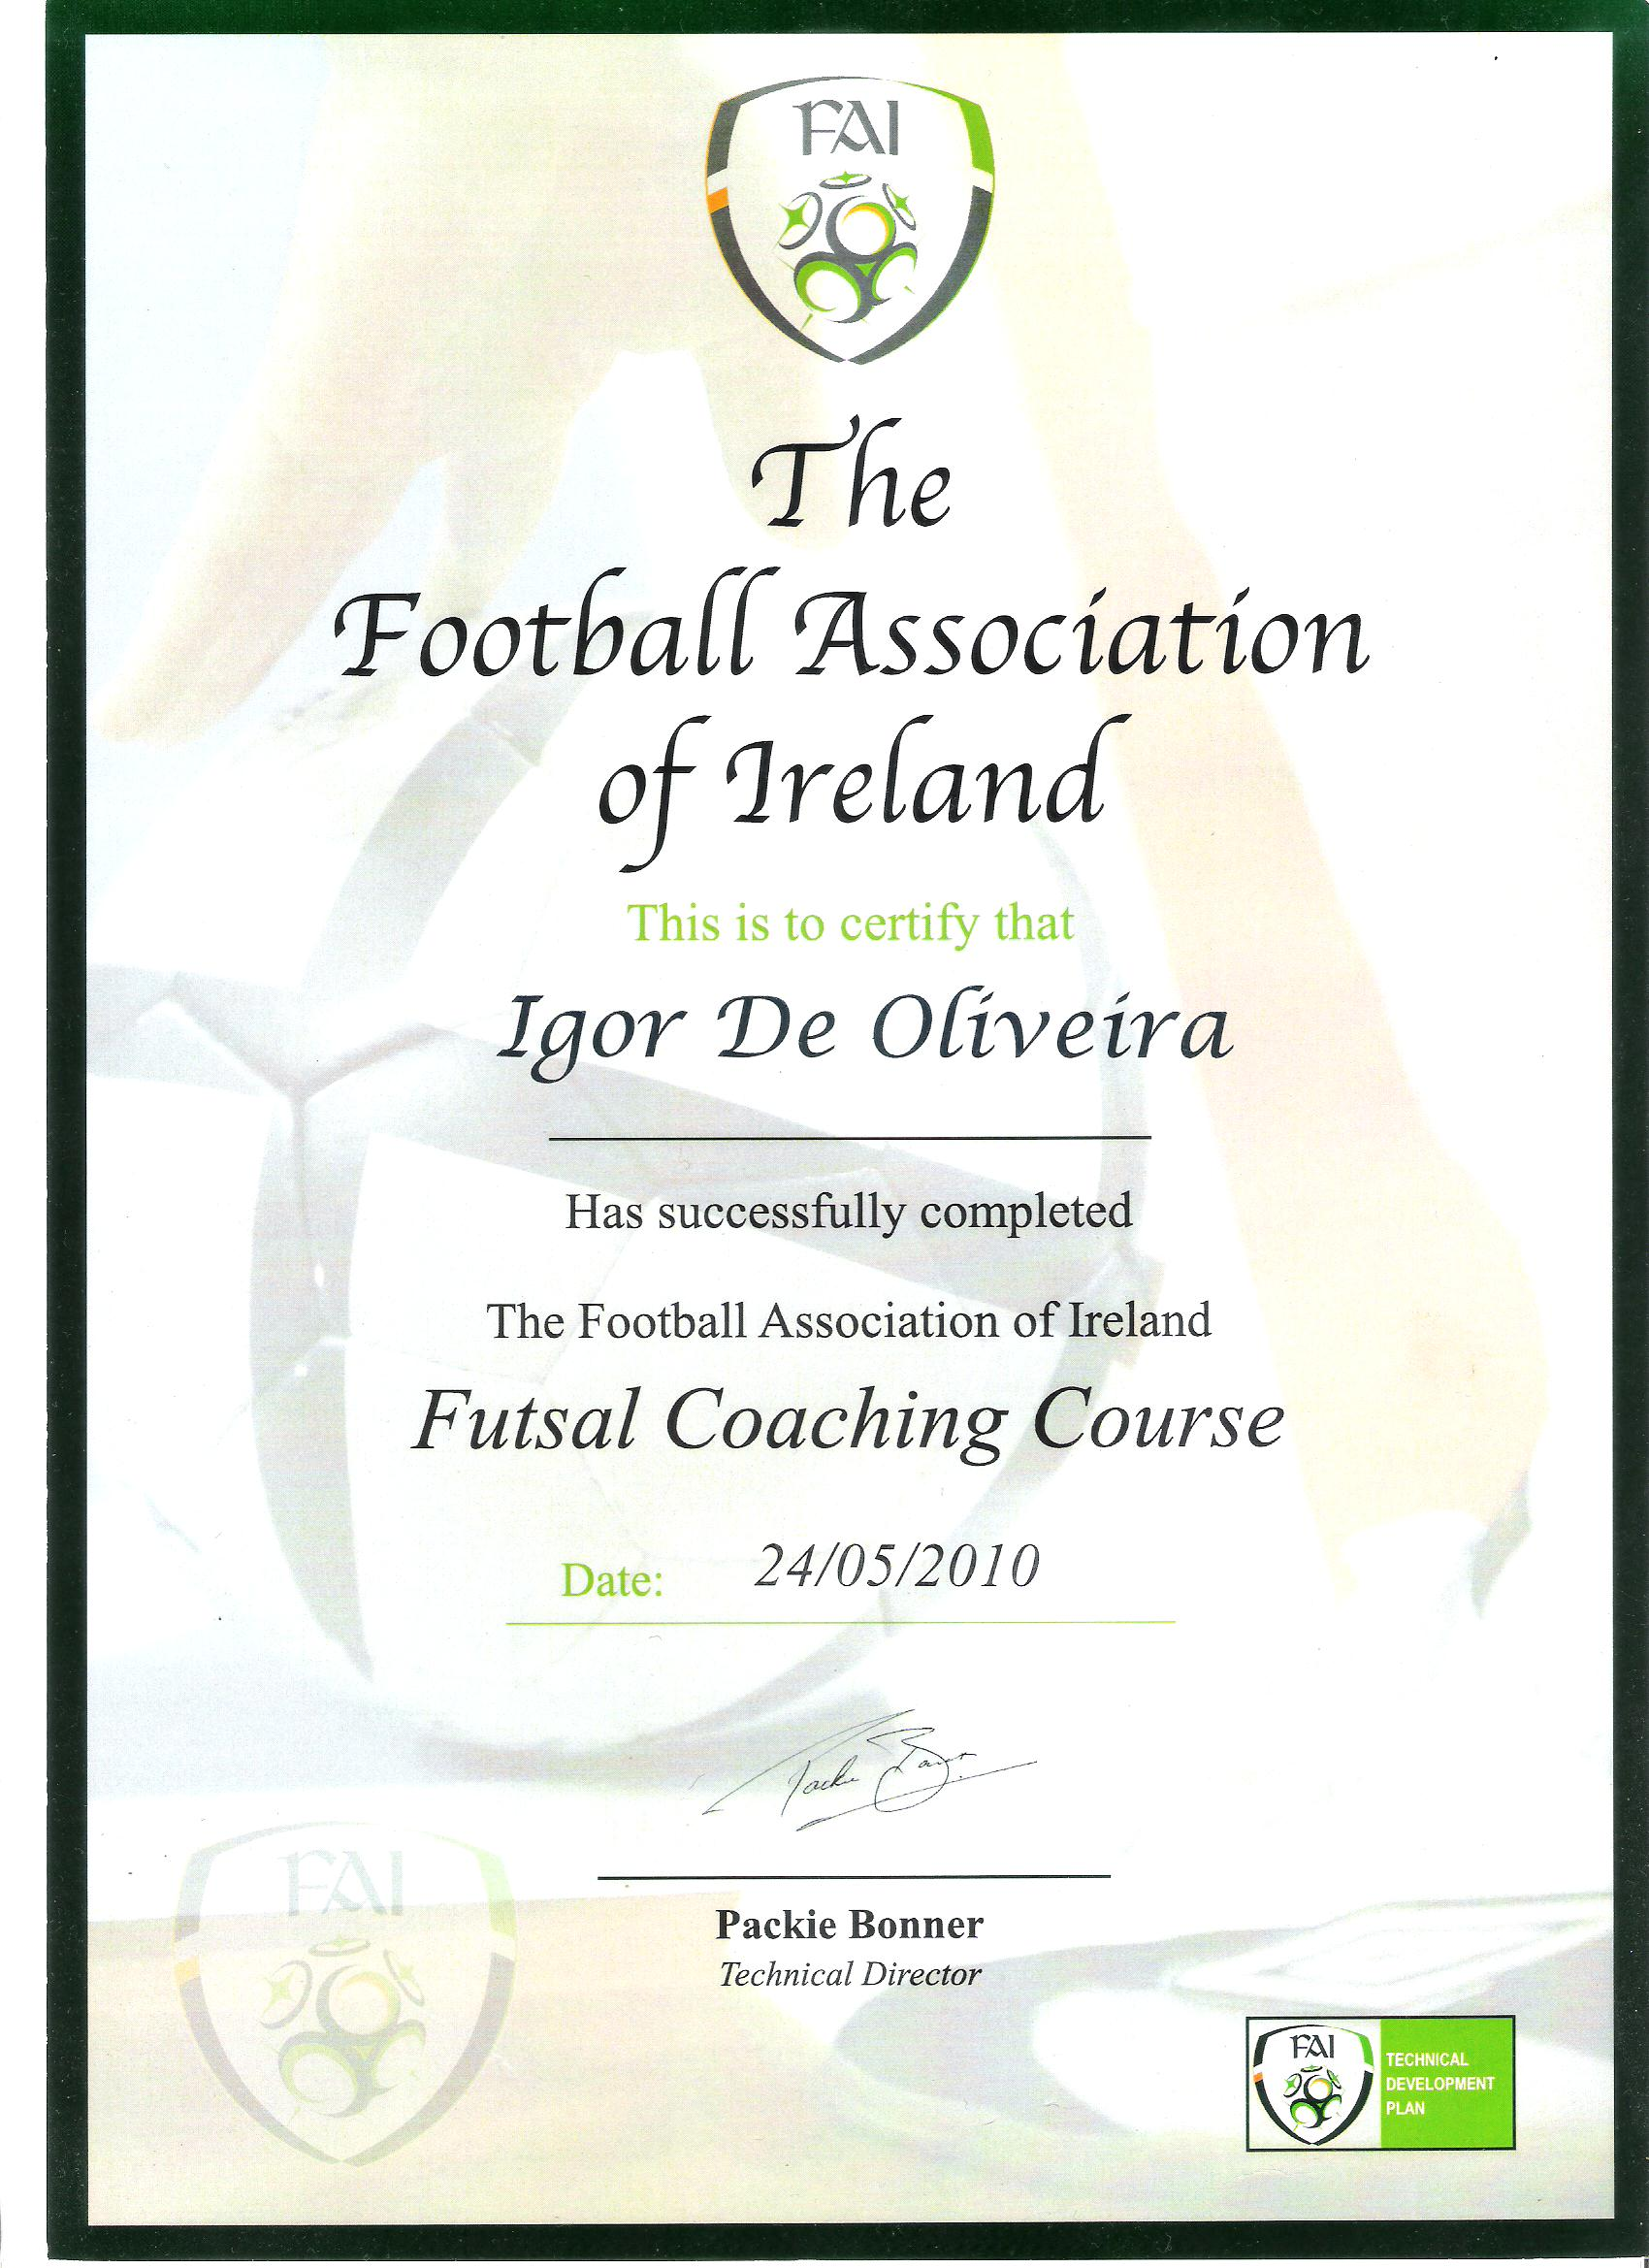 THE FAI - IRELAND